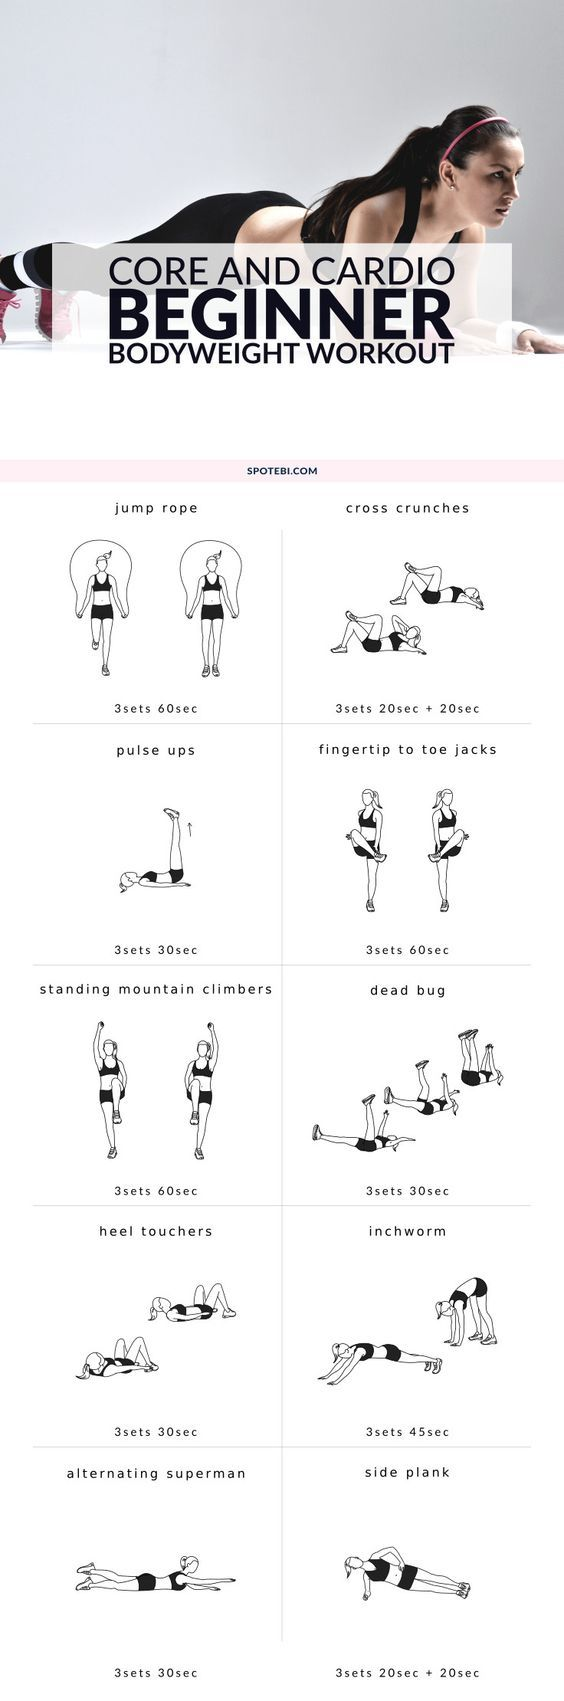 Boost your metabolism, trim your midsection and improve your fitness level with this core and cardio beginner bodyweight workout. 10 different exercises to target your core and burn body fat. http://www.spotebi.com/workout-routines/core-cardio-beginner-bodyweight-workout/: